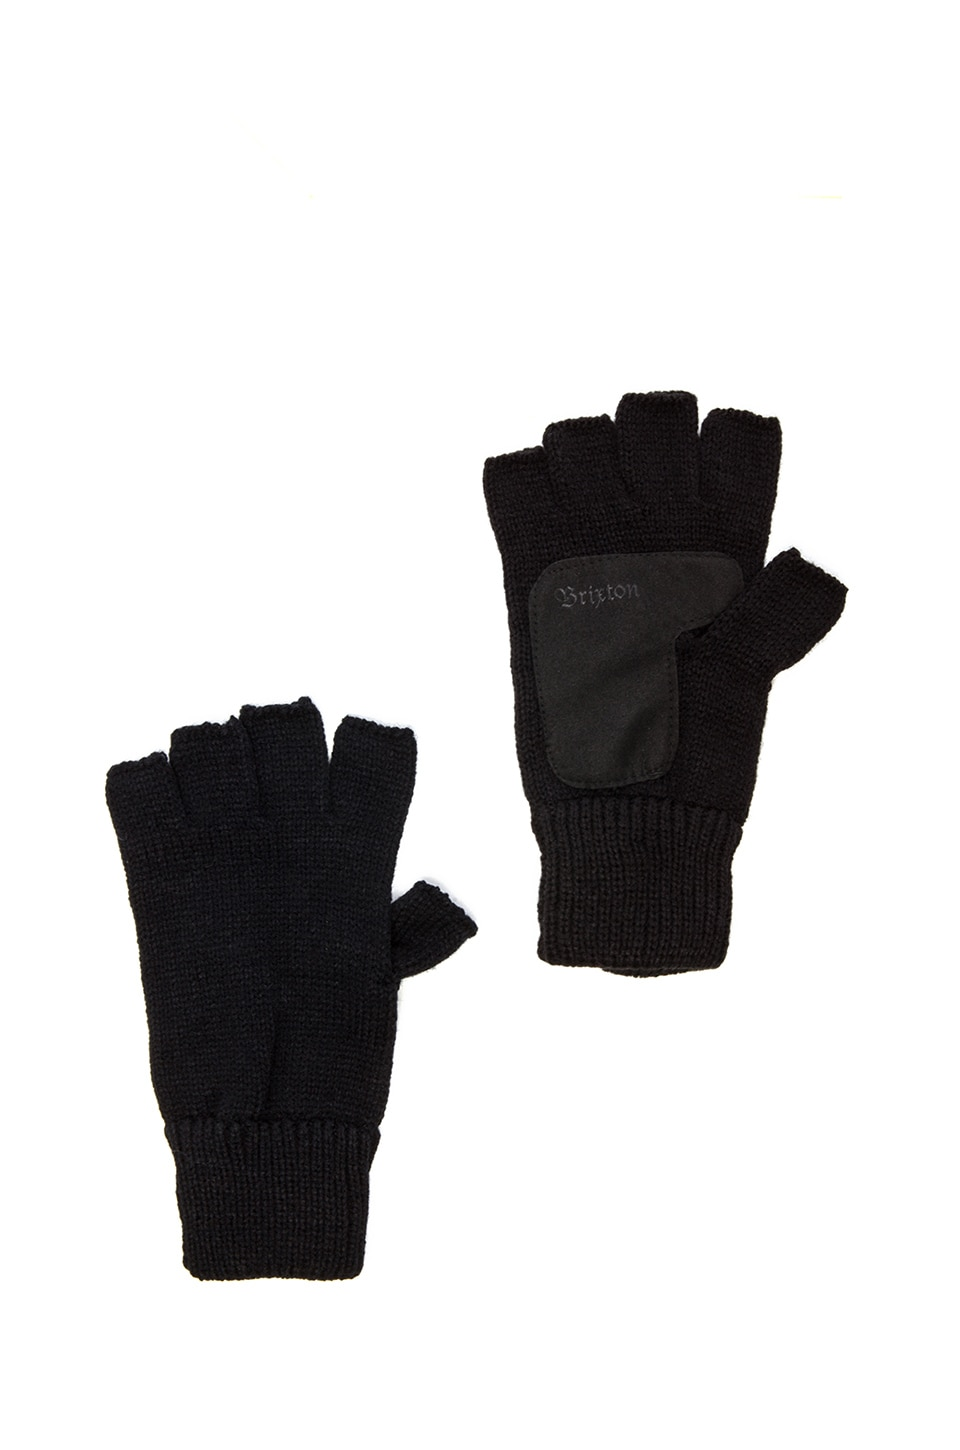 Brixton Cutter Fingerless Glove in Black